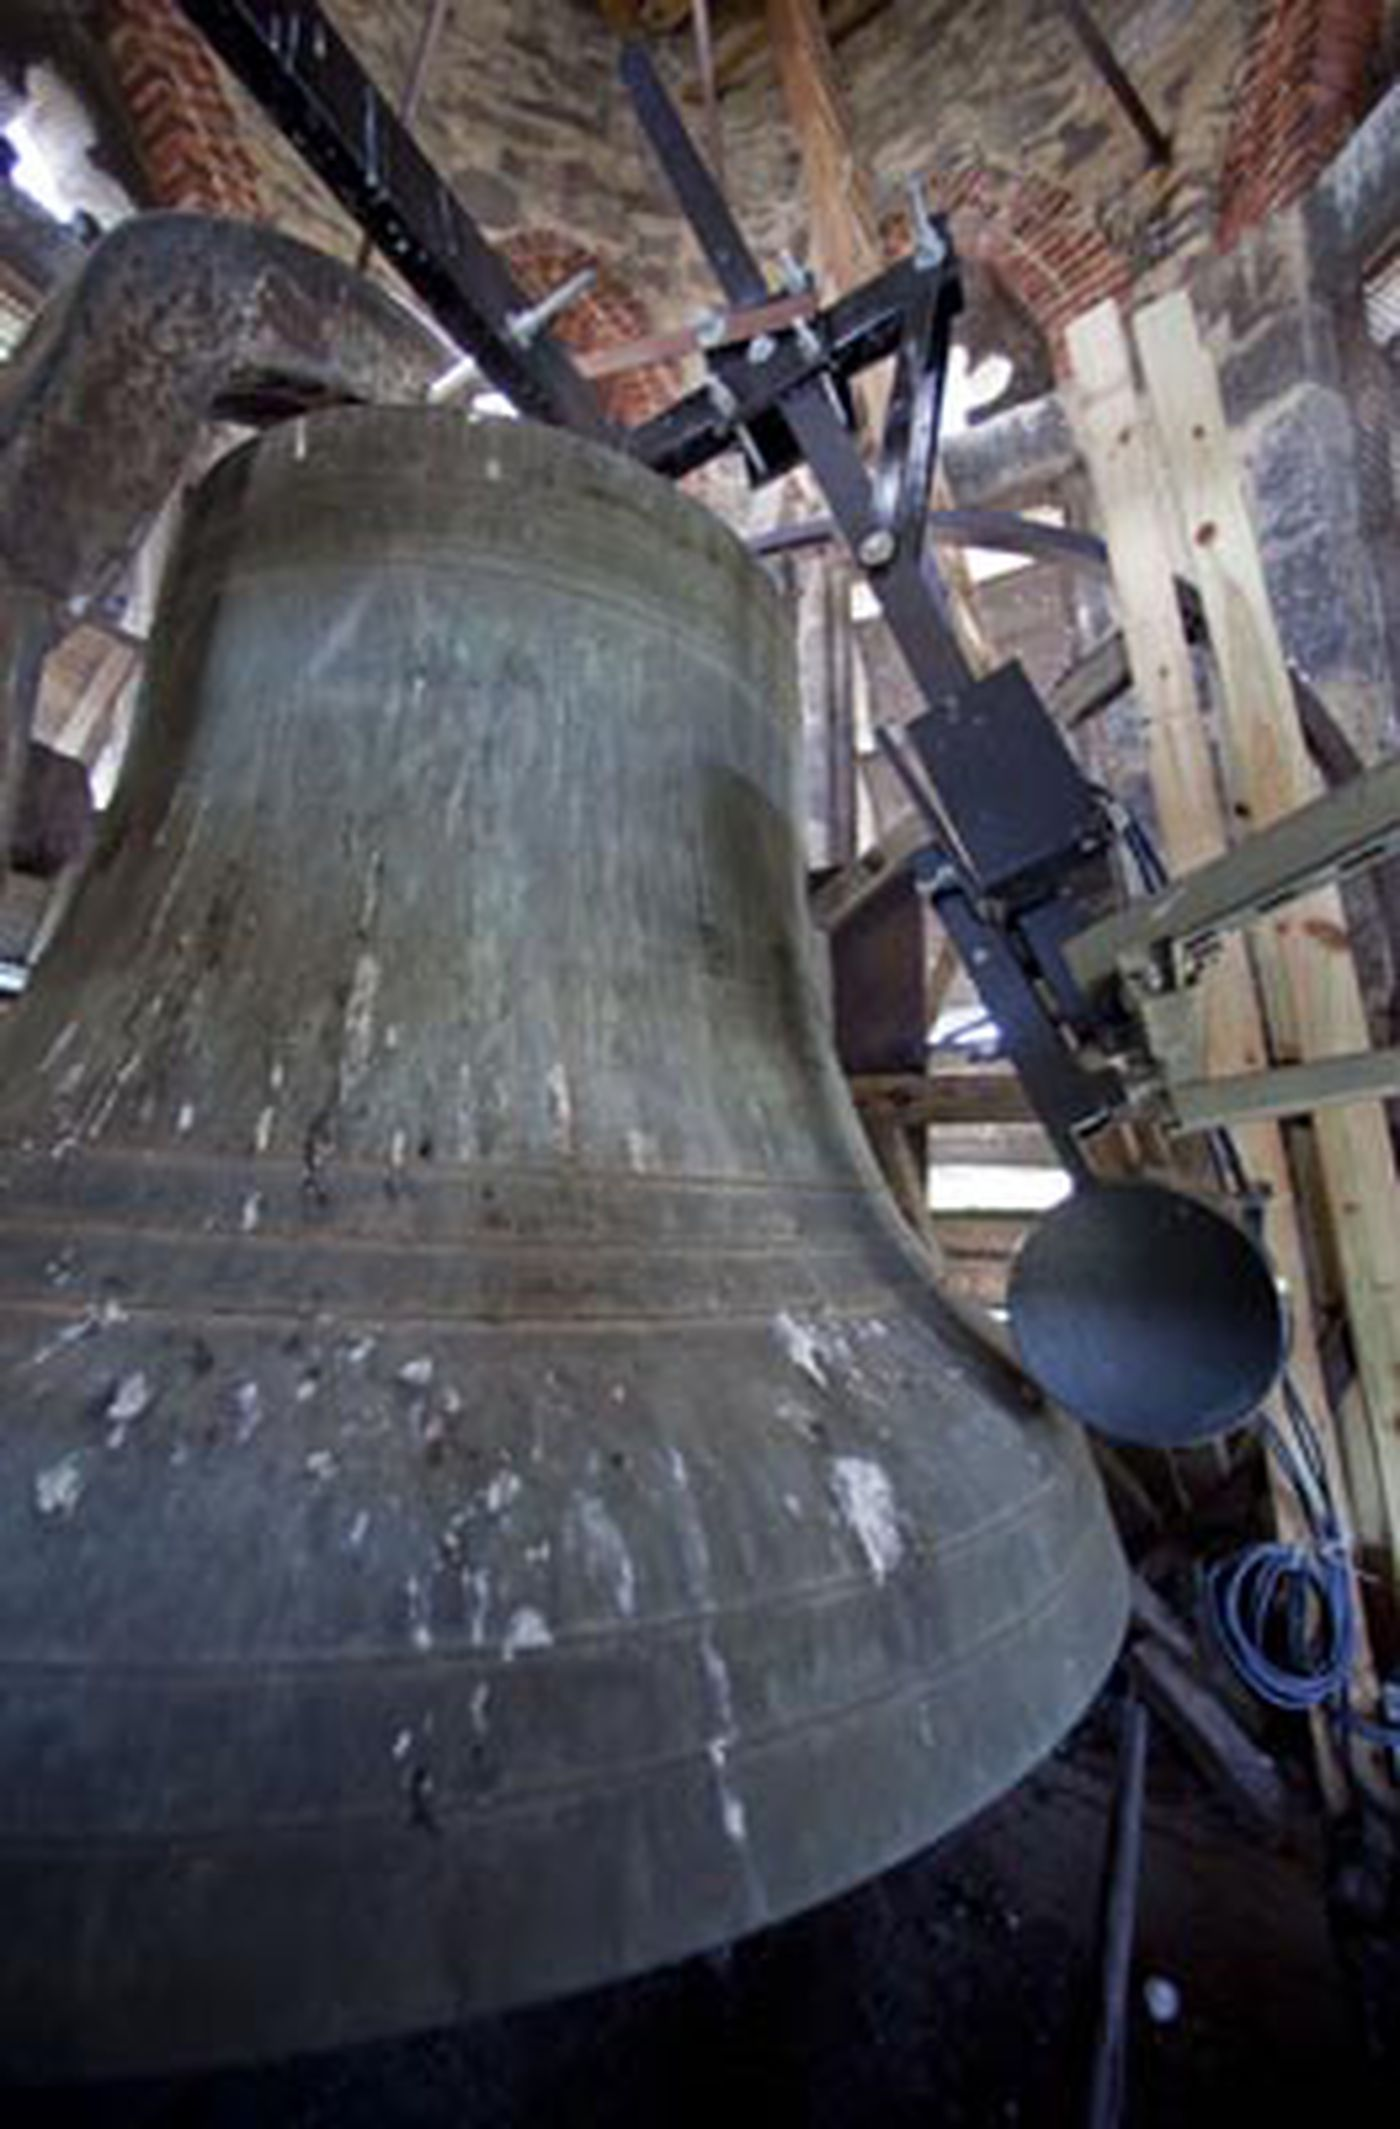 Too loud too early for Manayunk church bell, neighbor complains